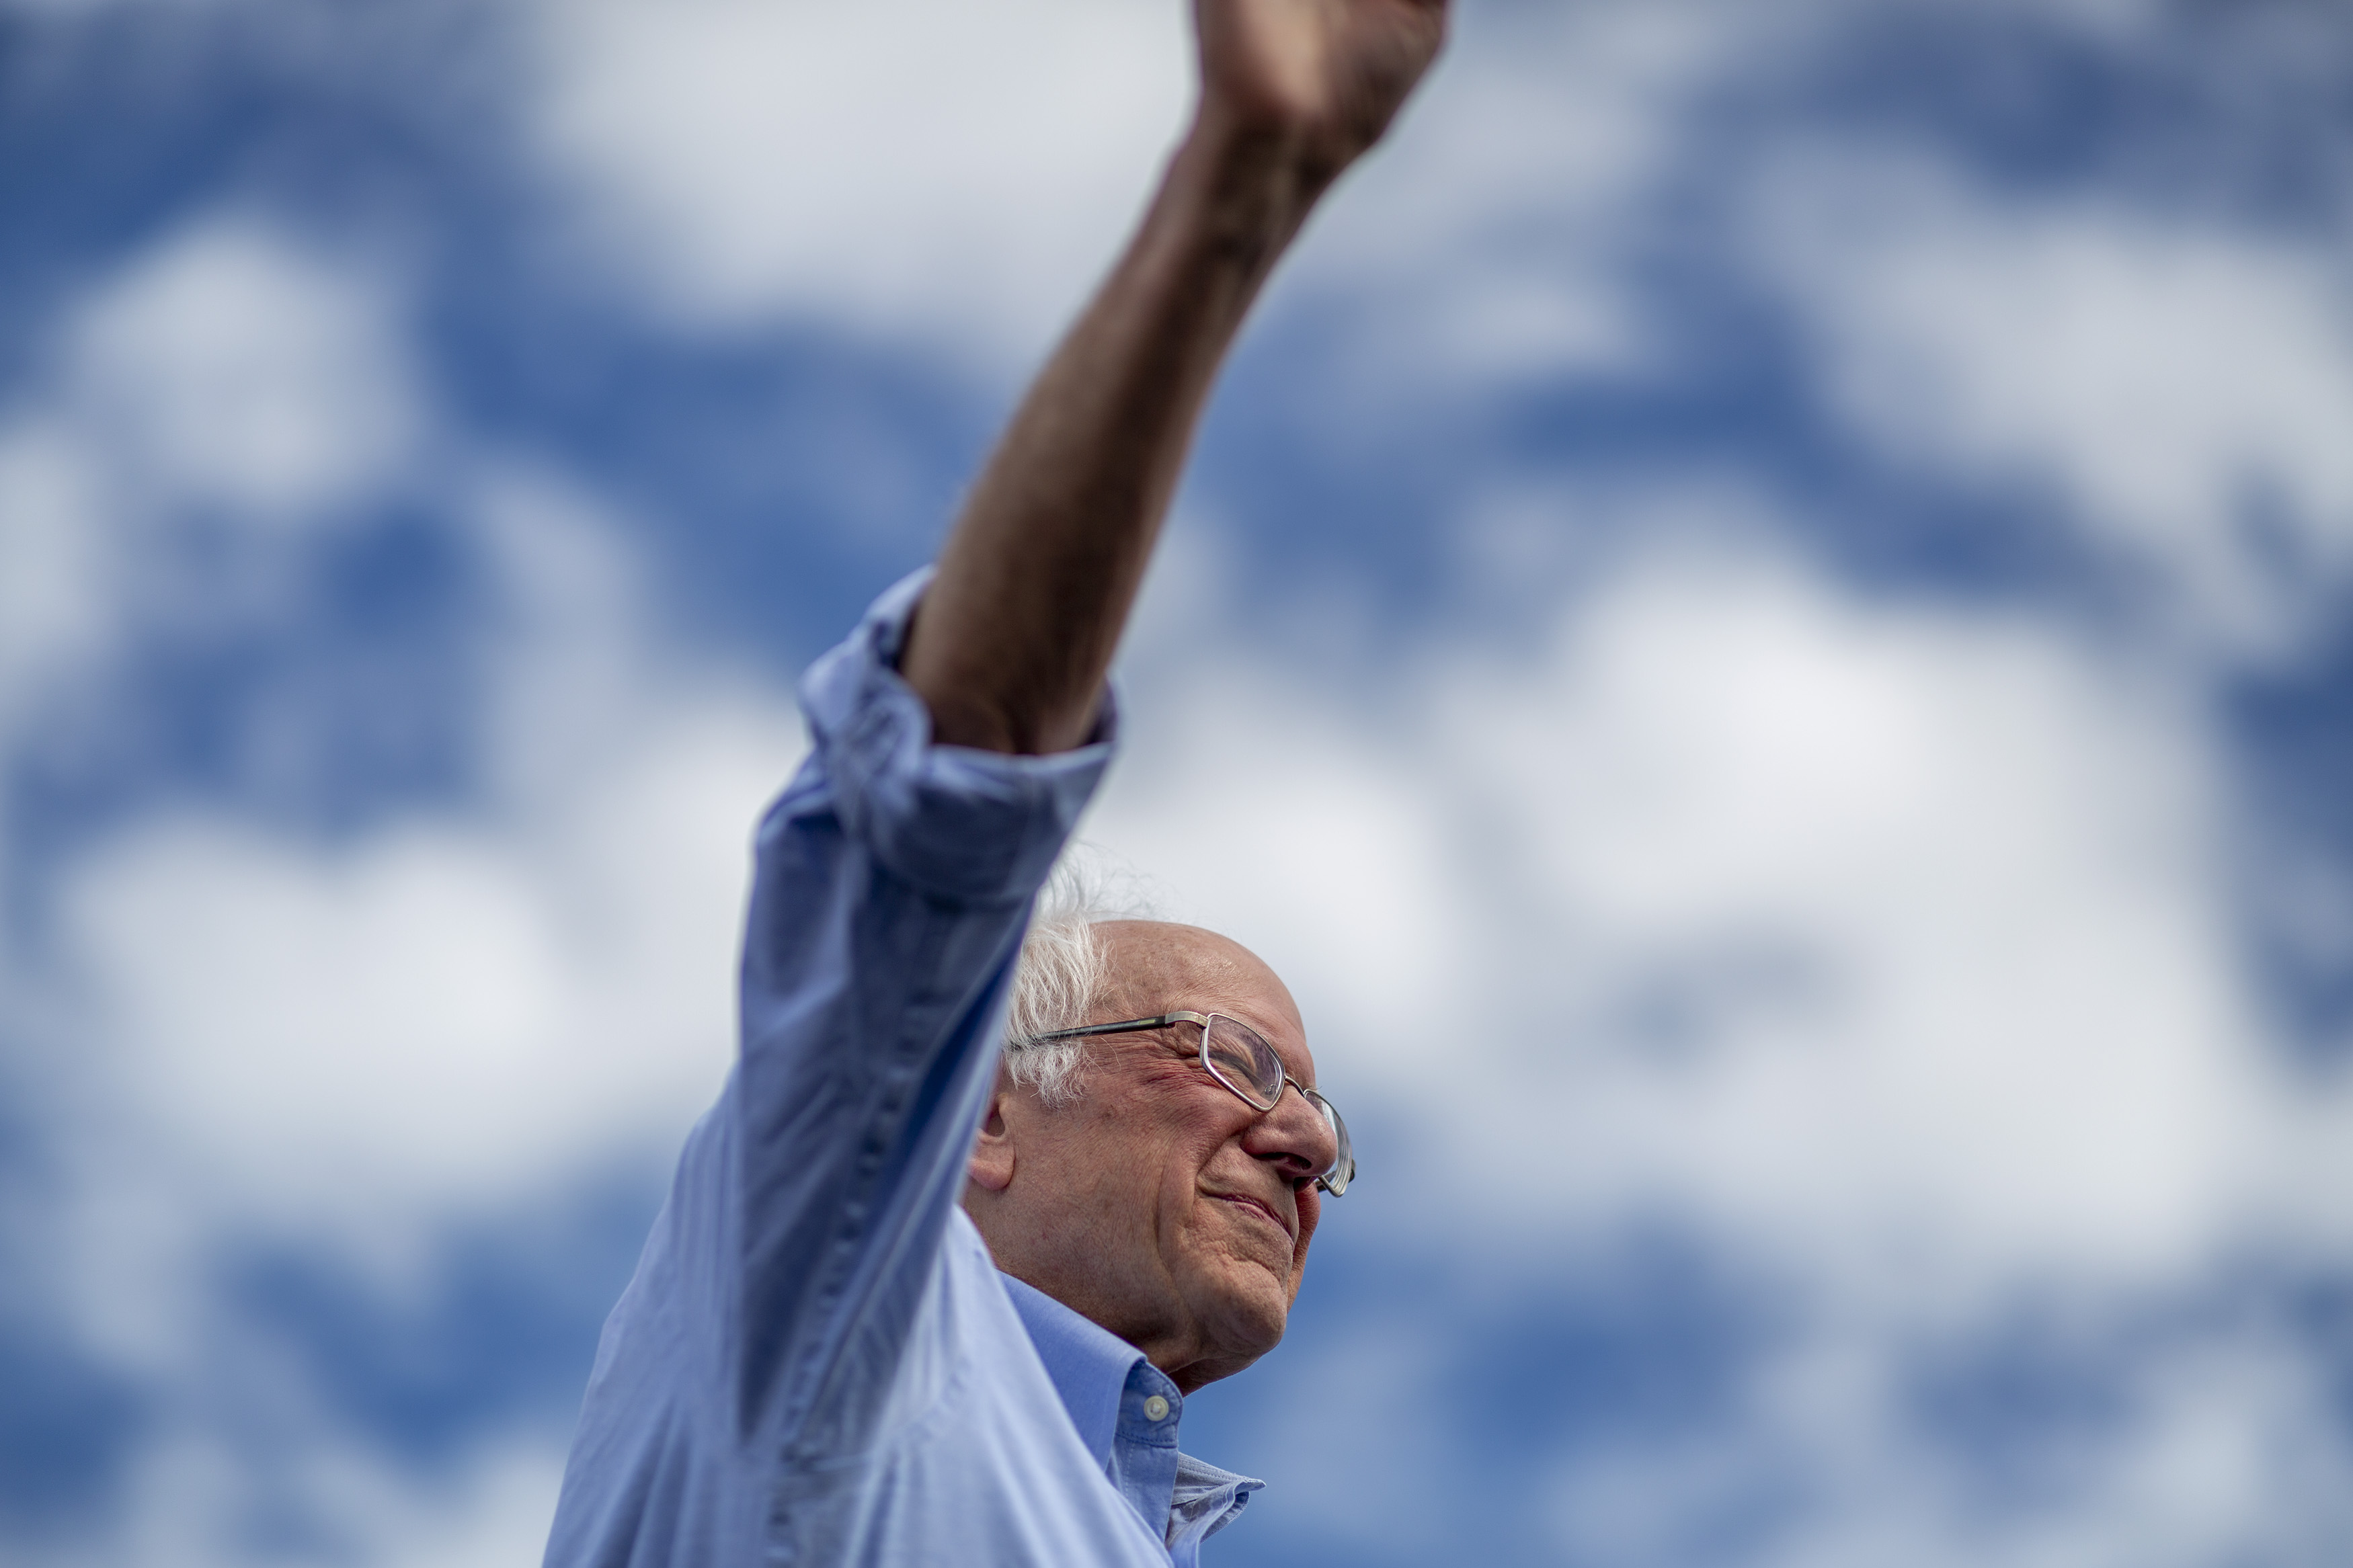 SANTA ANA, CA - FEBRUARY 21: Democratic presidential candidate Sen. Bernie Sanders (I-VT) holds a Get Out the Early Vote rally on February 21, 2020 in Santa Ana, California. Sanders is campaigning ahead of the 2020 California Democratic primary on March 3. California moved its Democratic primary from June to ahead of Super Tuesday to have much greater political influence as an early primary state. (Photo by David McNew/Getty Images)